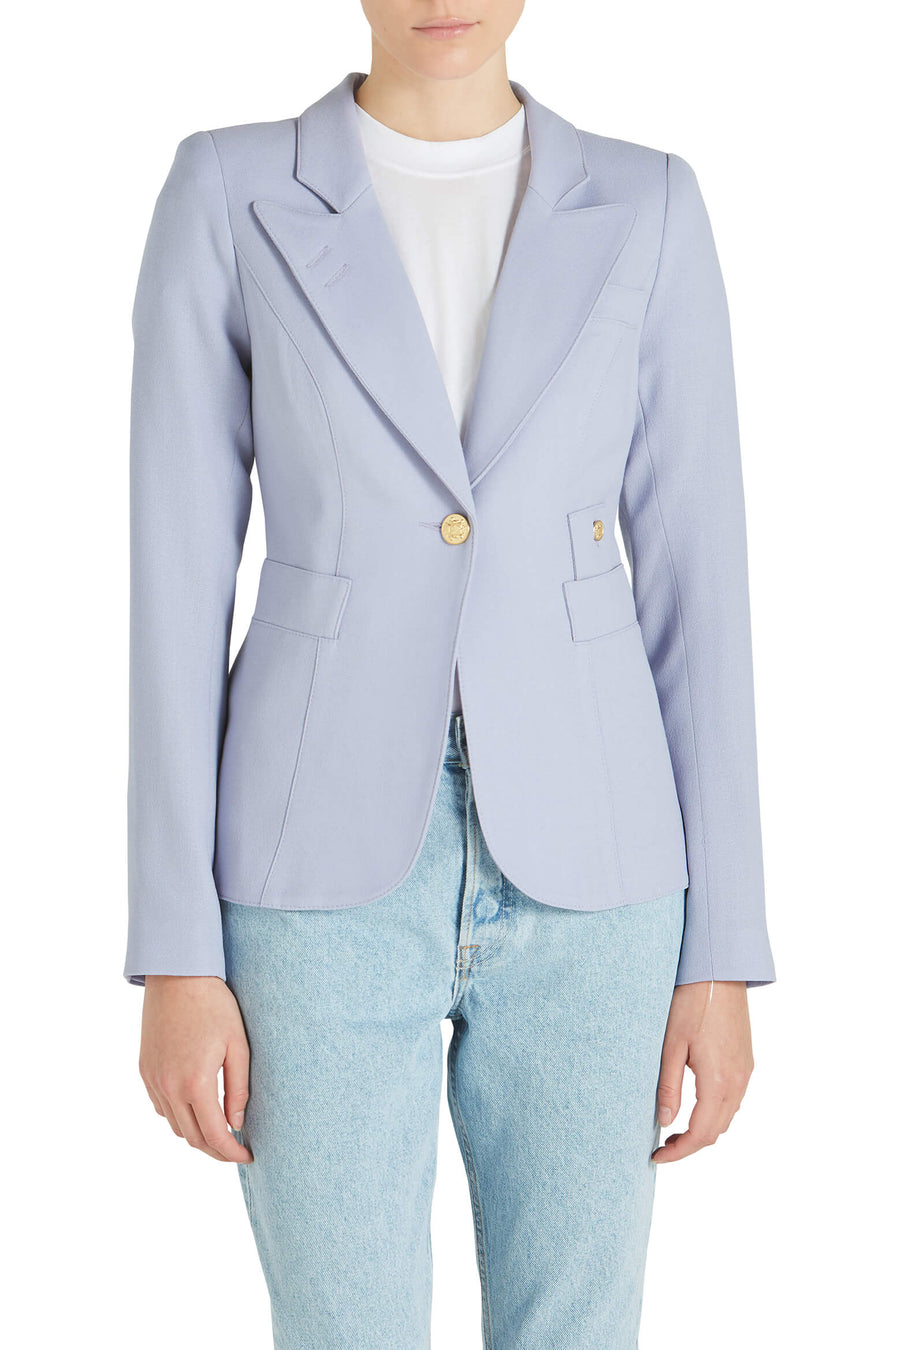 Smythe Duchess Blazer in Lavender from The New Trend